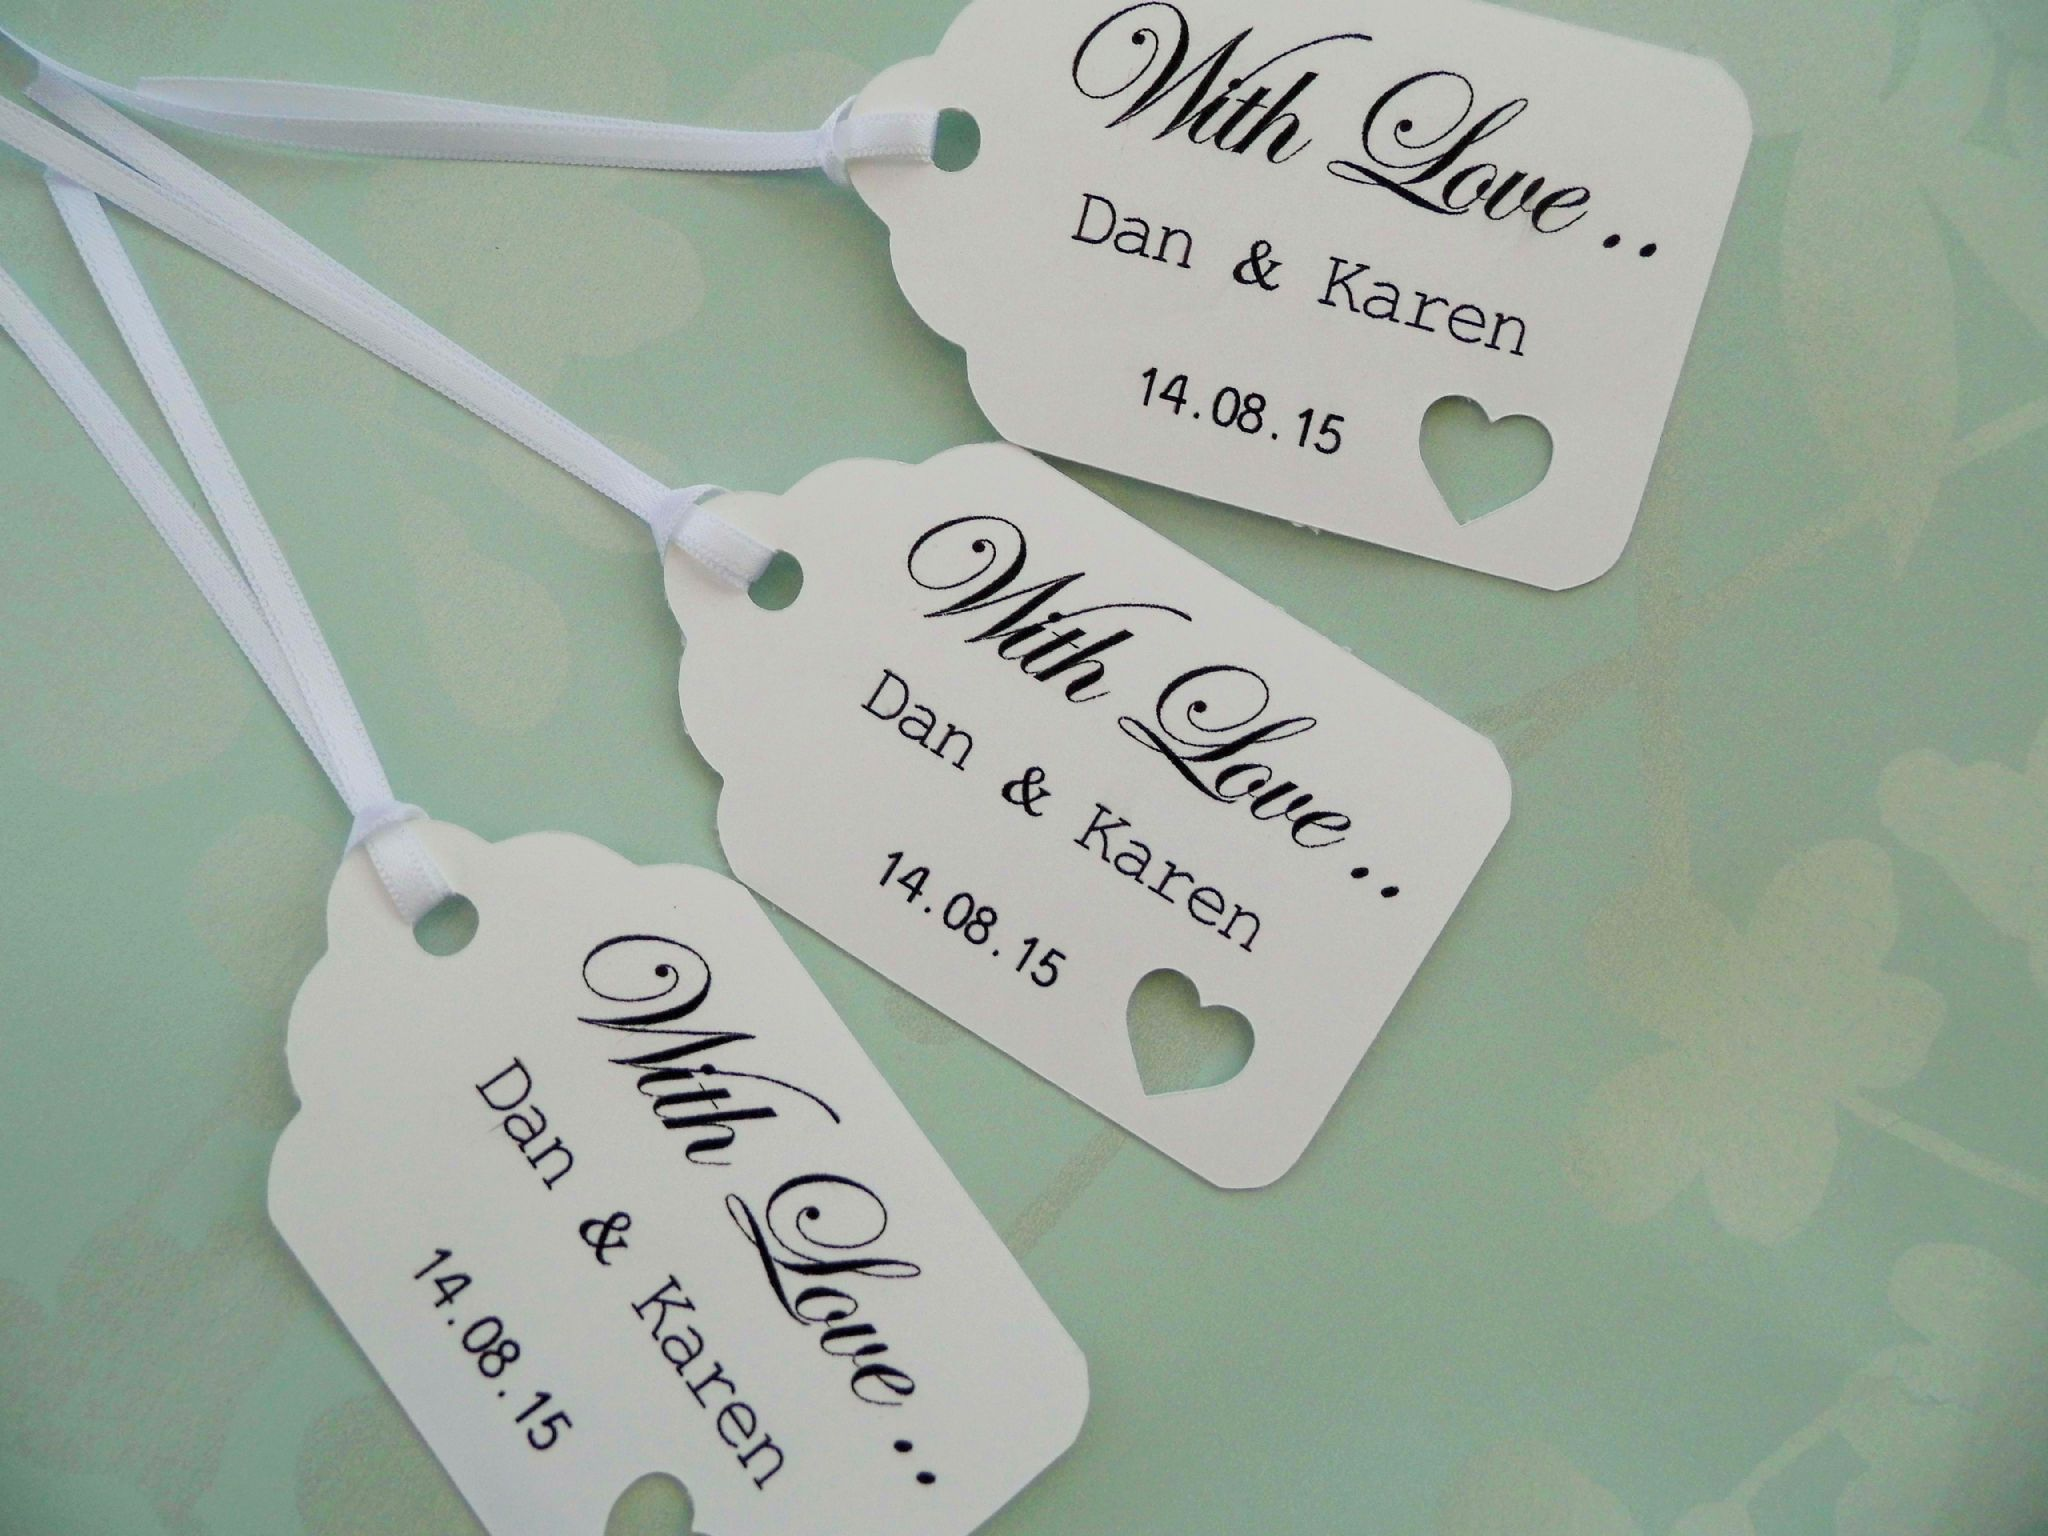 Personalised Wedding Gift Tags : Wedding Cards Personalised Wedding Gift Tags personalised wedding gift ...